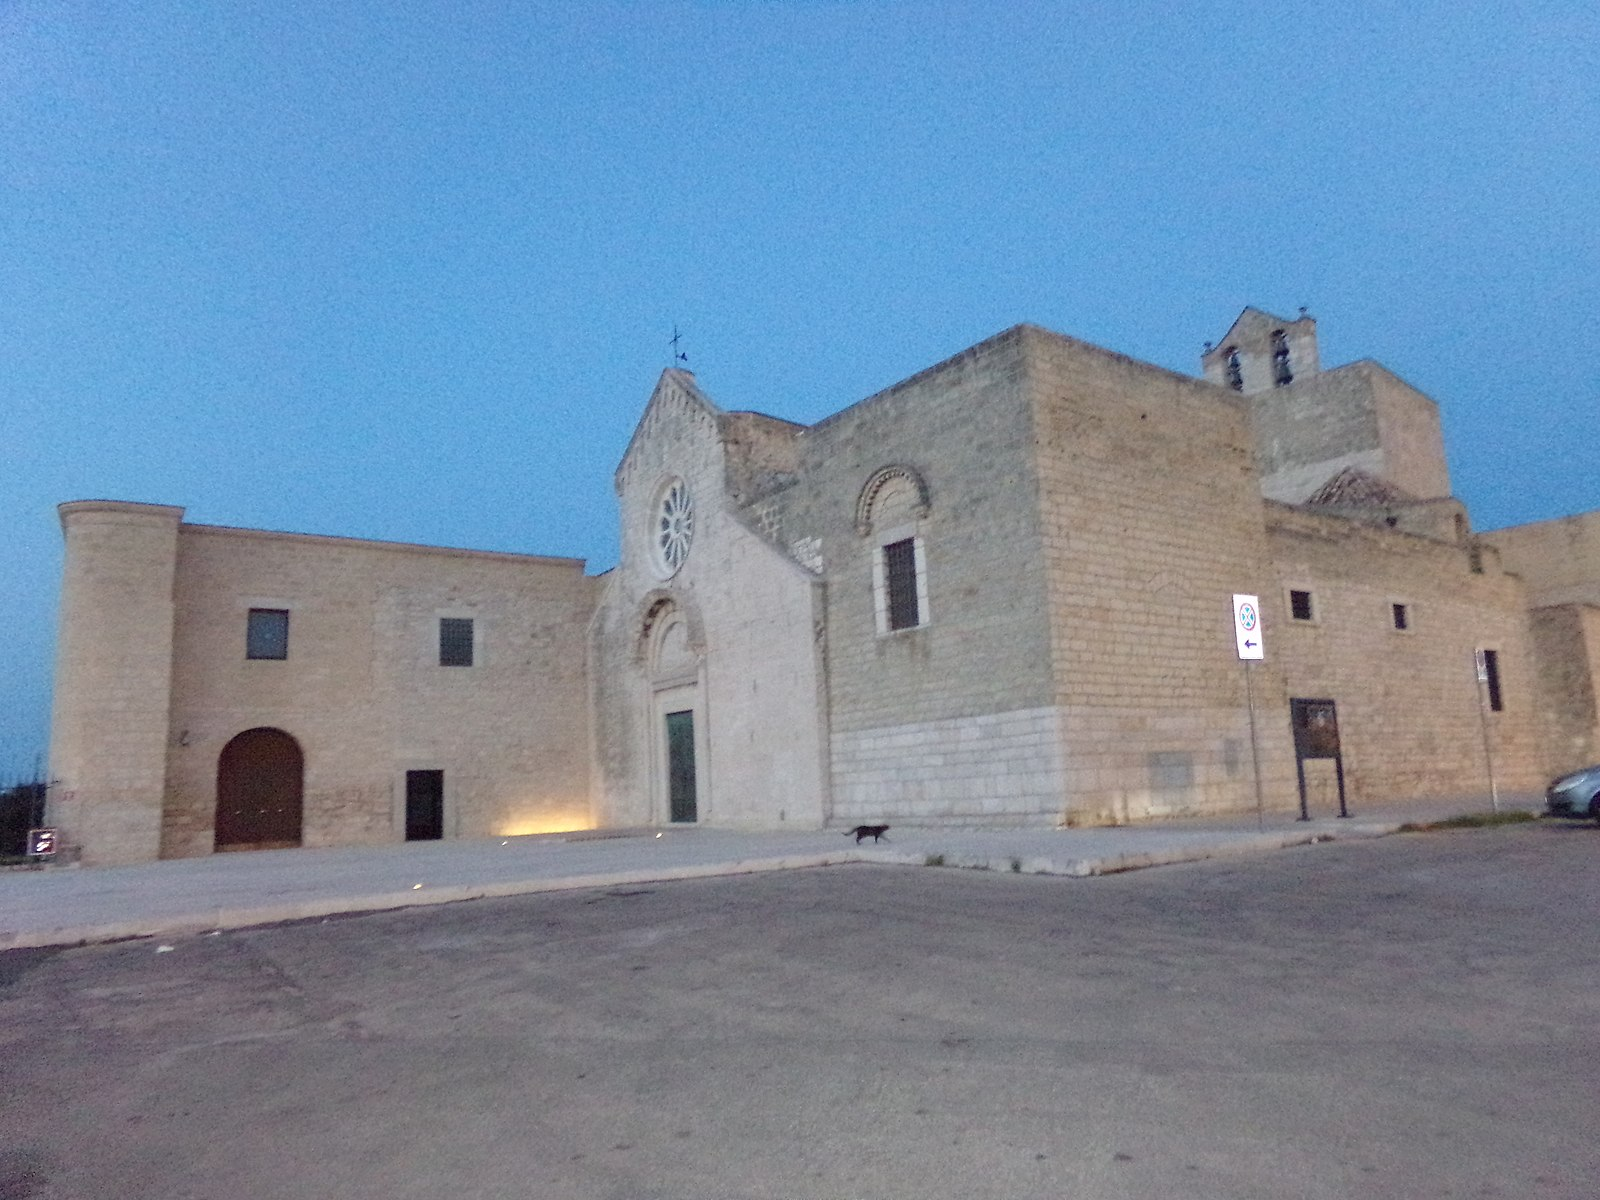 monastero, chiesa, croce di colonna – Trani – Laterradipuglia.it